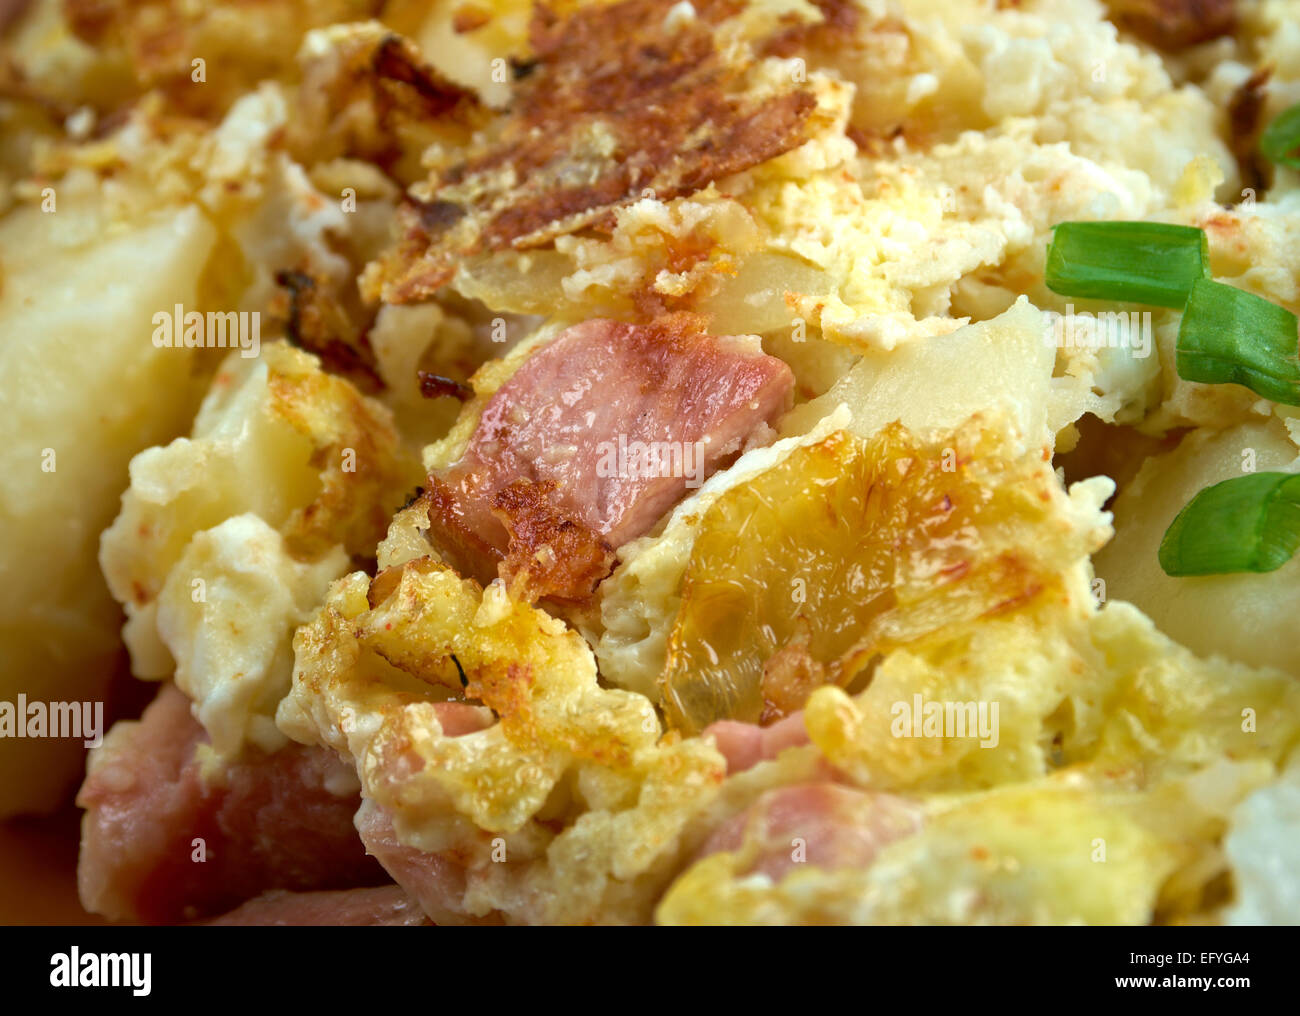 Bauernfruhstuck Farmer's breakfast. German country breakfast dish made from fried potatoes, eggs, onions, leeks Stock Photo